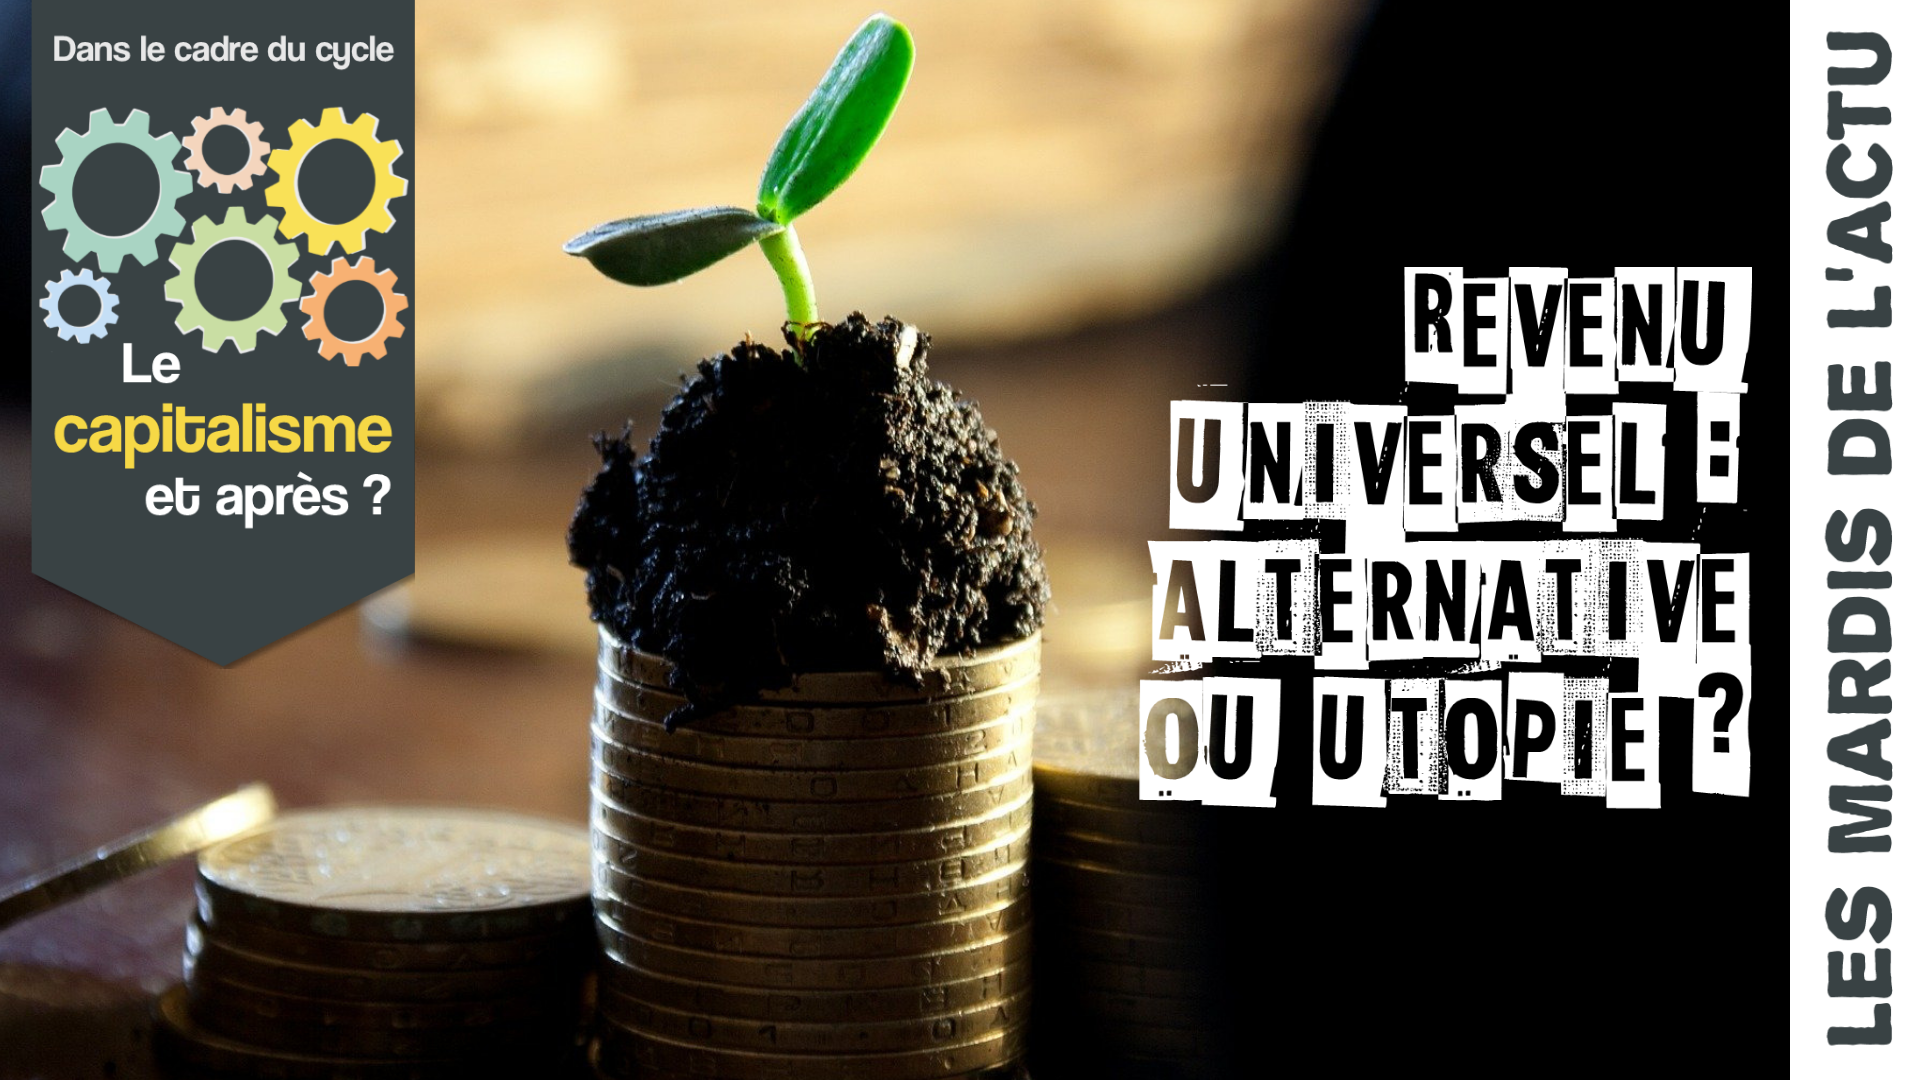 Allocation universelle